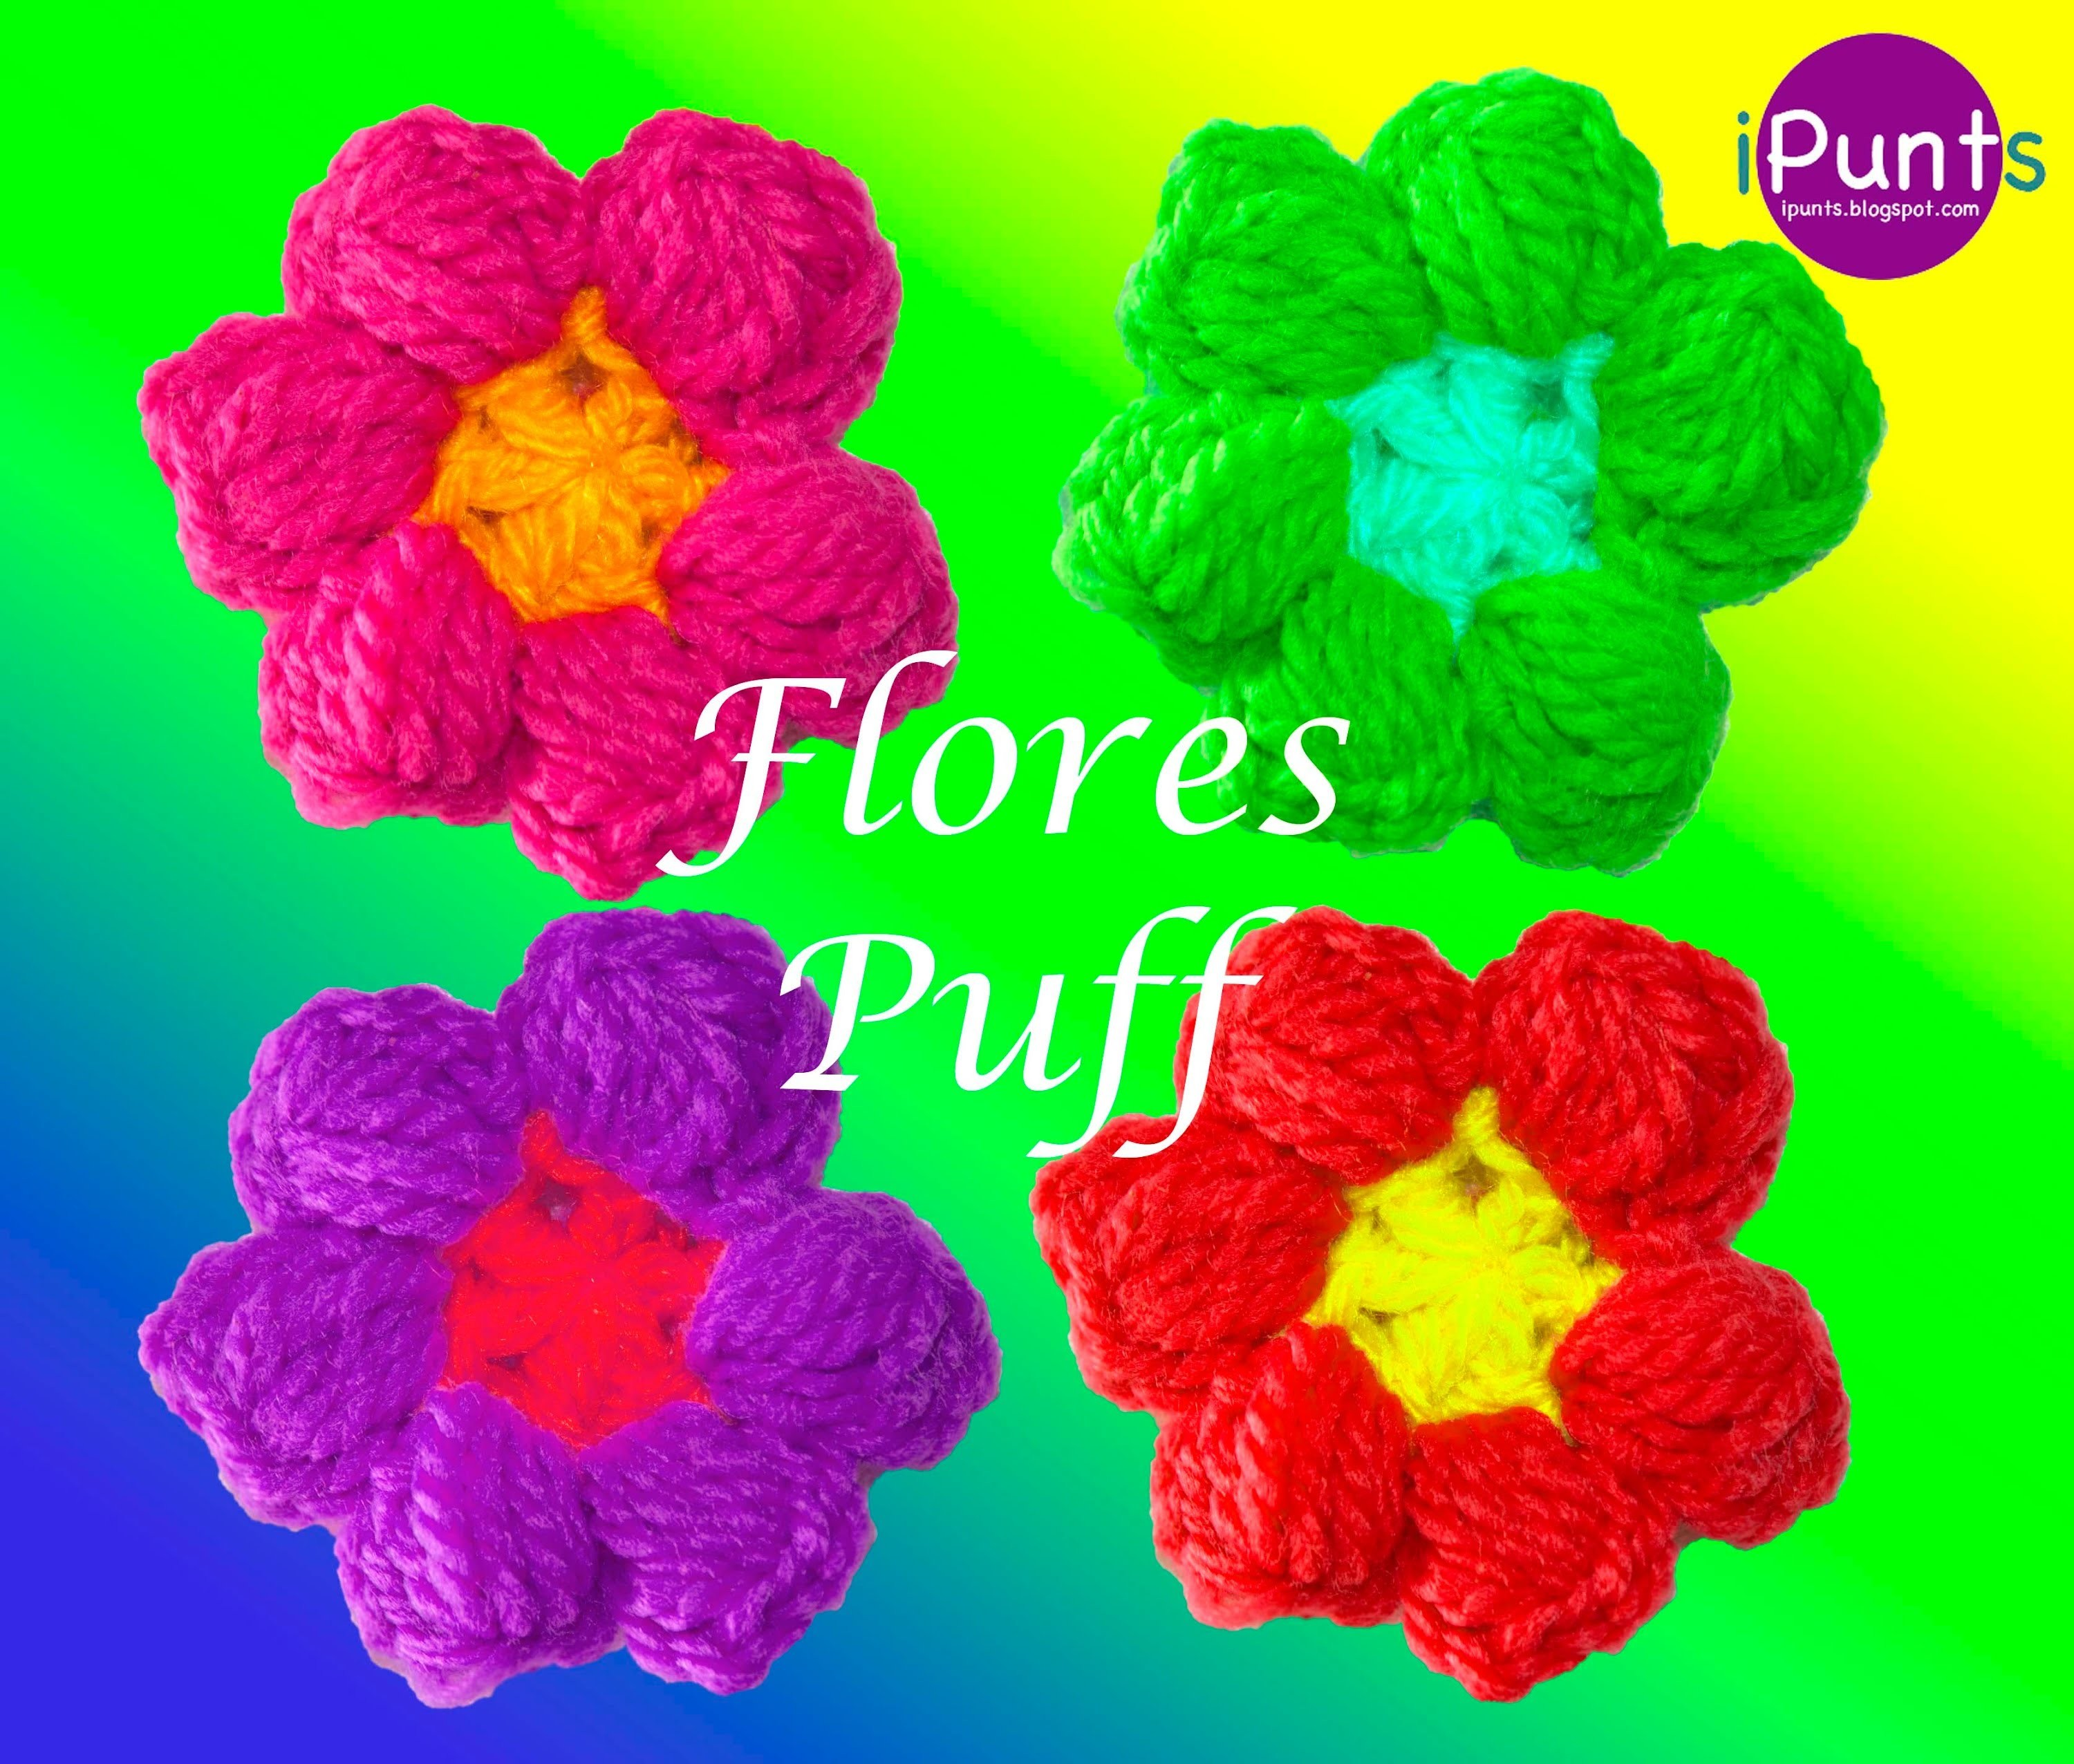 Flores puff crochet paso a paso my crafts and diy projects - Hacer flores de ganchillo ...